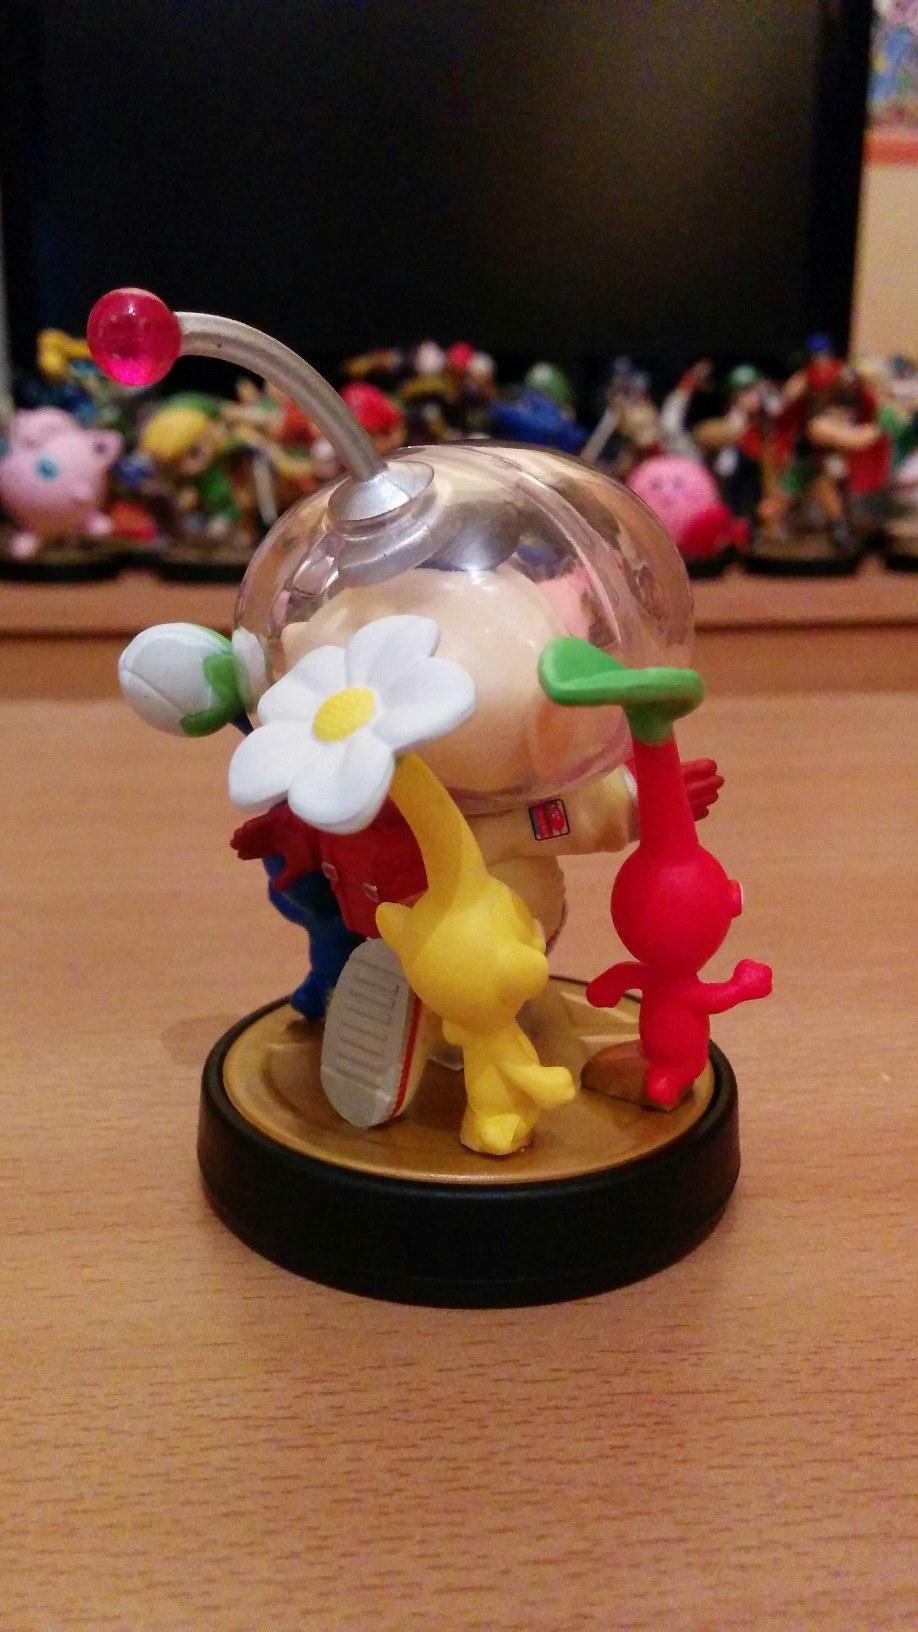 Photos Of The Bowser Jr Olimar And Dr Mario Amiibo